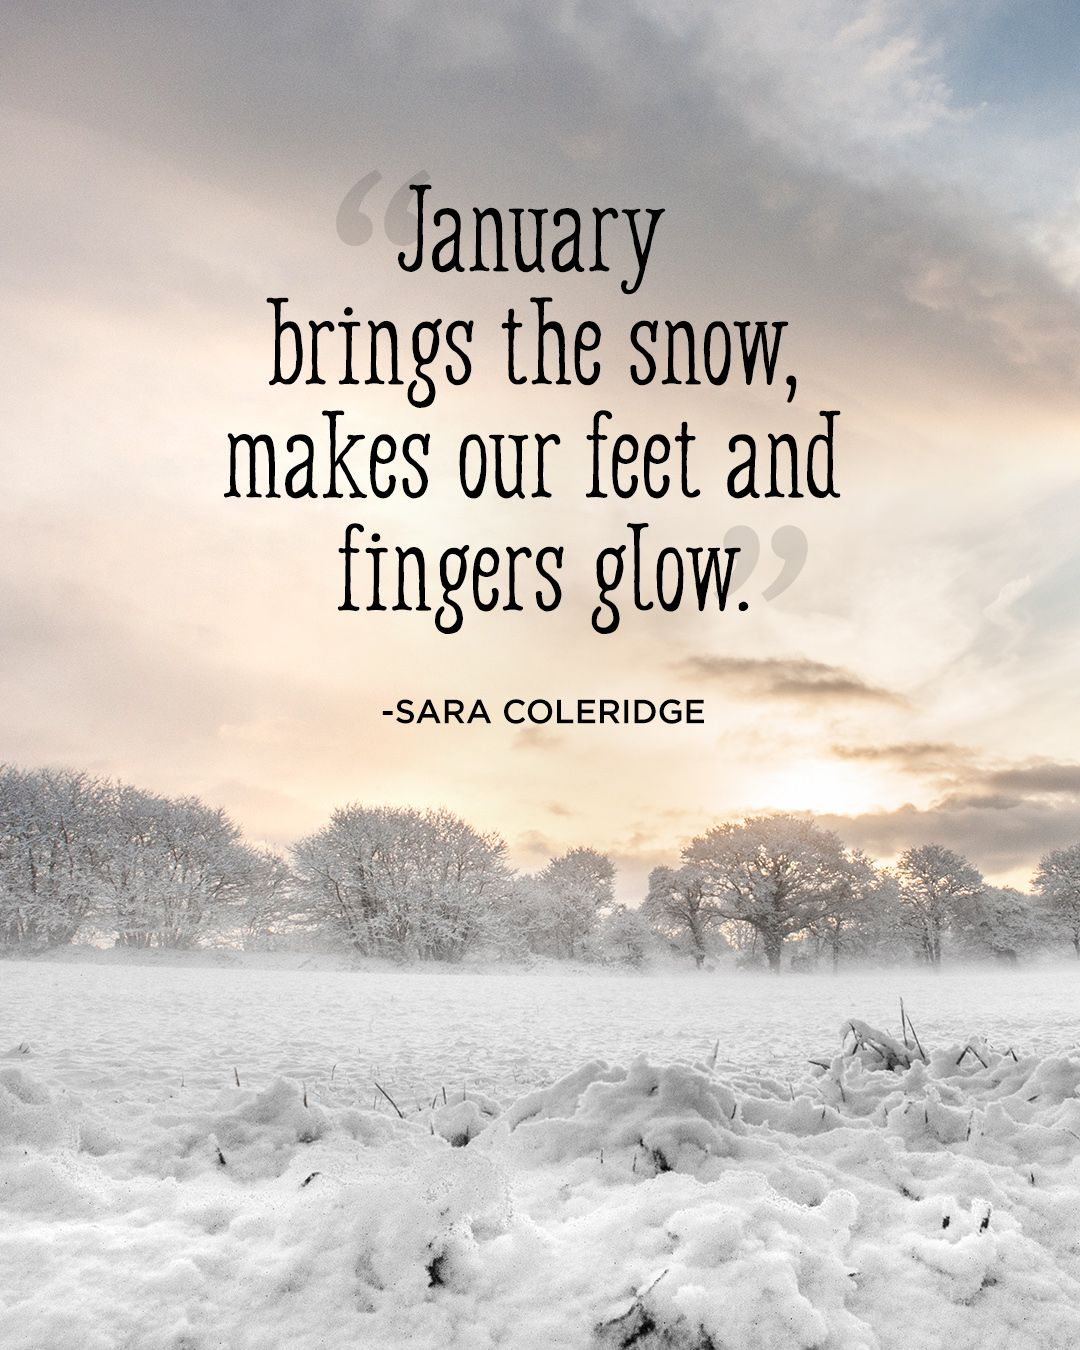 Winter Quotes: Winter Quotes That Will Help You Enjoy The Beauty Of The